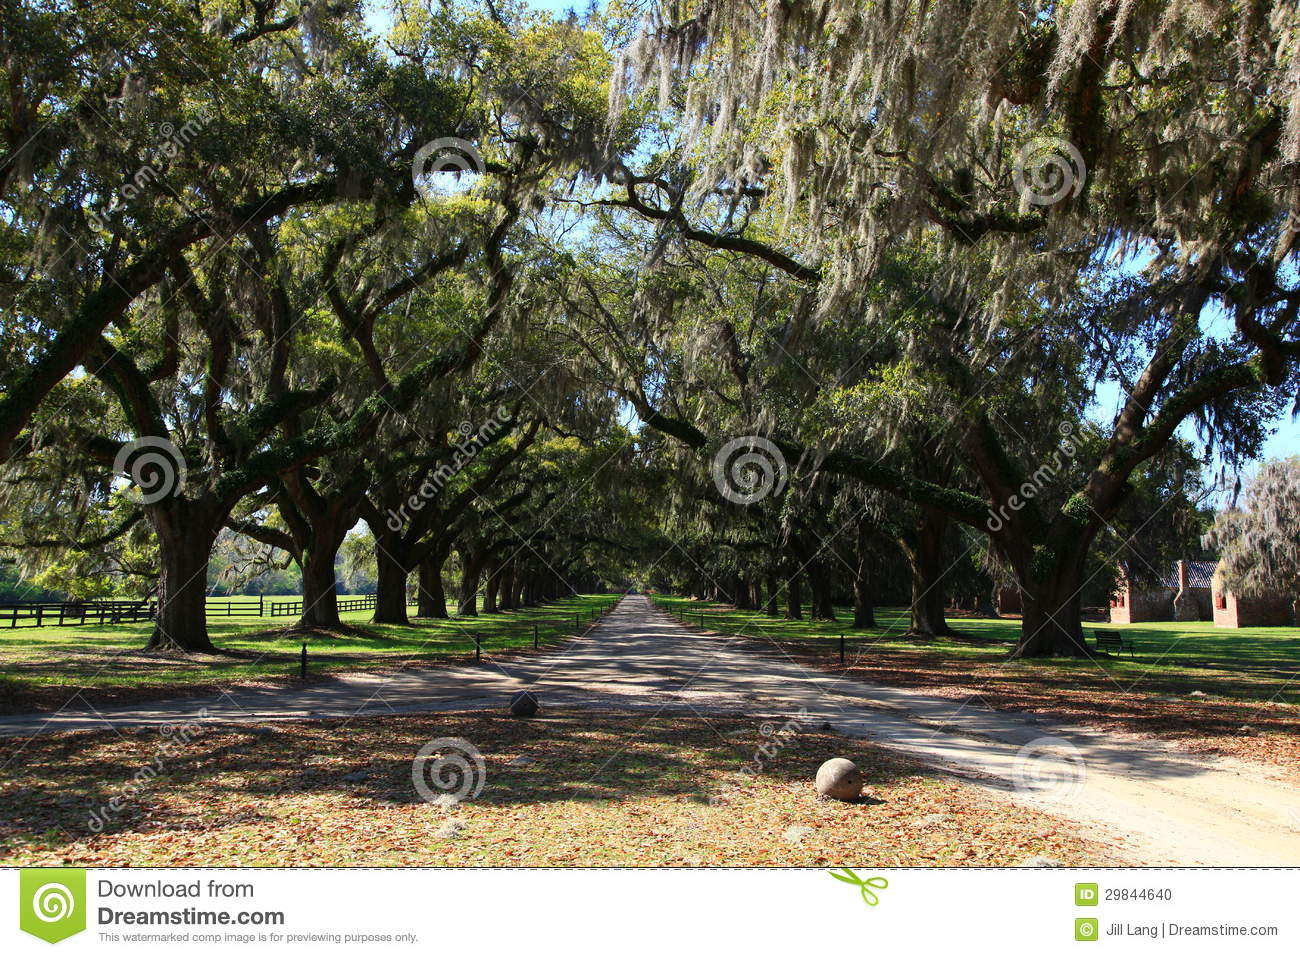 edisto island online dating Edisto beach, sc status: open year round season dates  the park is located on sc hwy 174 at edisto island, 50 miles se of charleston, south carolina.